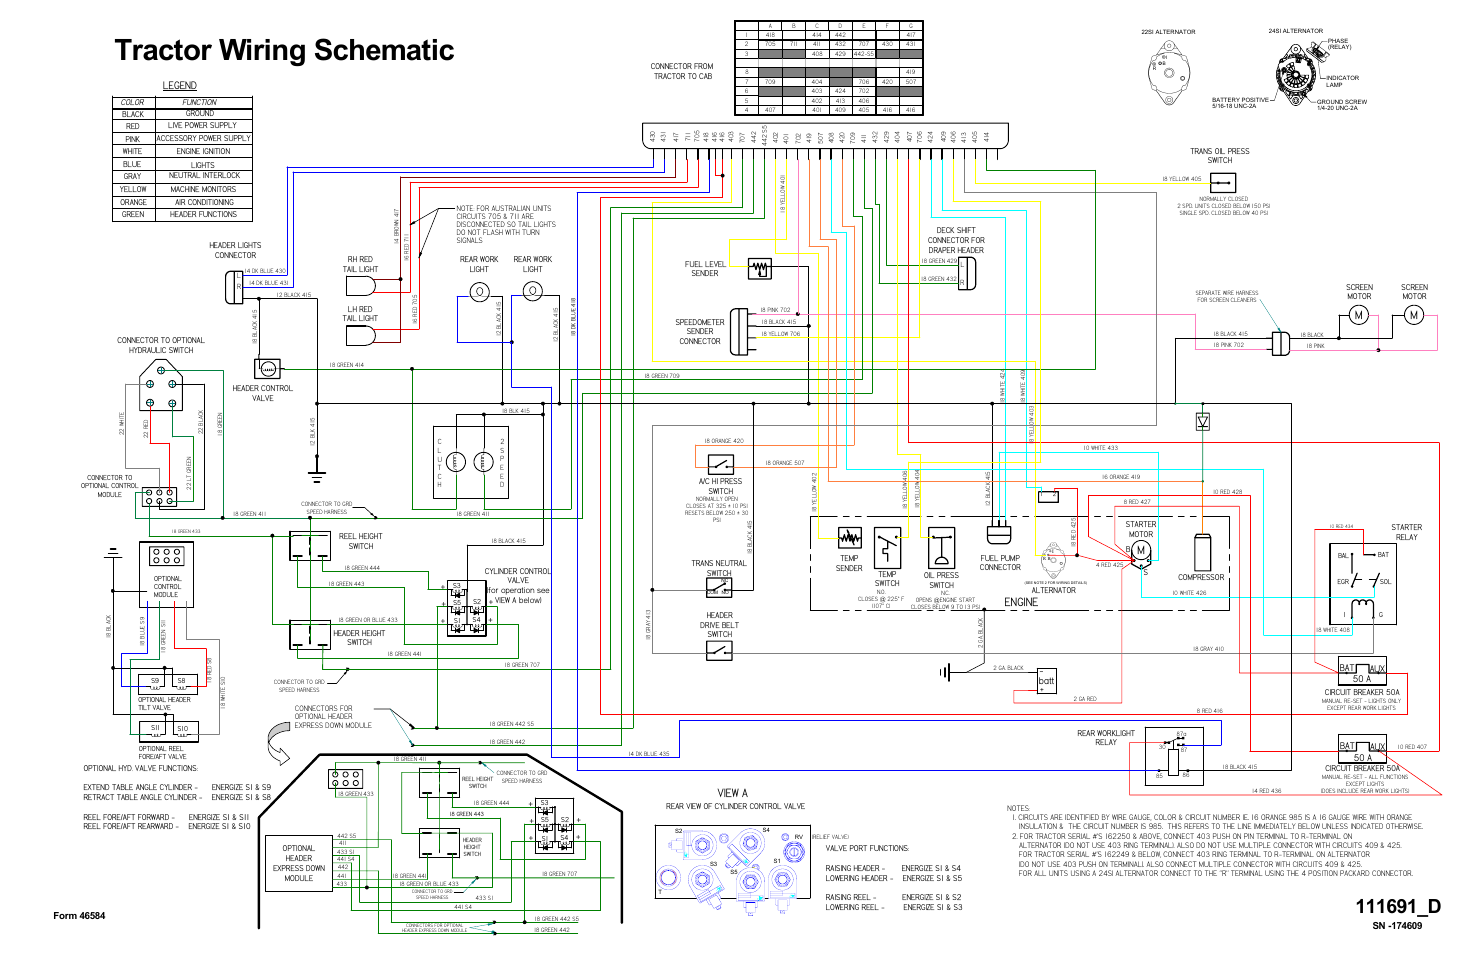 Tractor wiring schematic, Mengine, View a | MacDon 9250 SP ... on